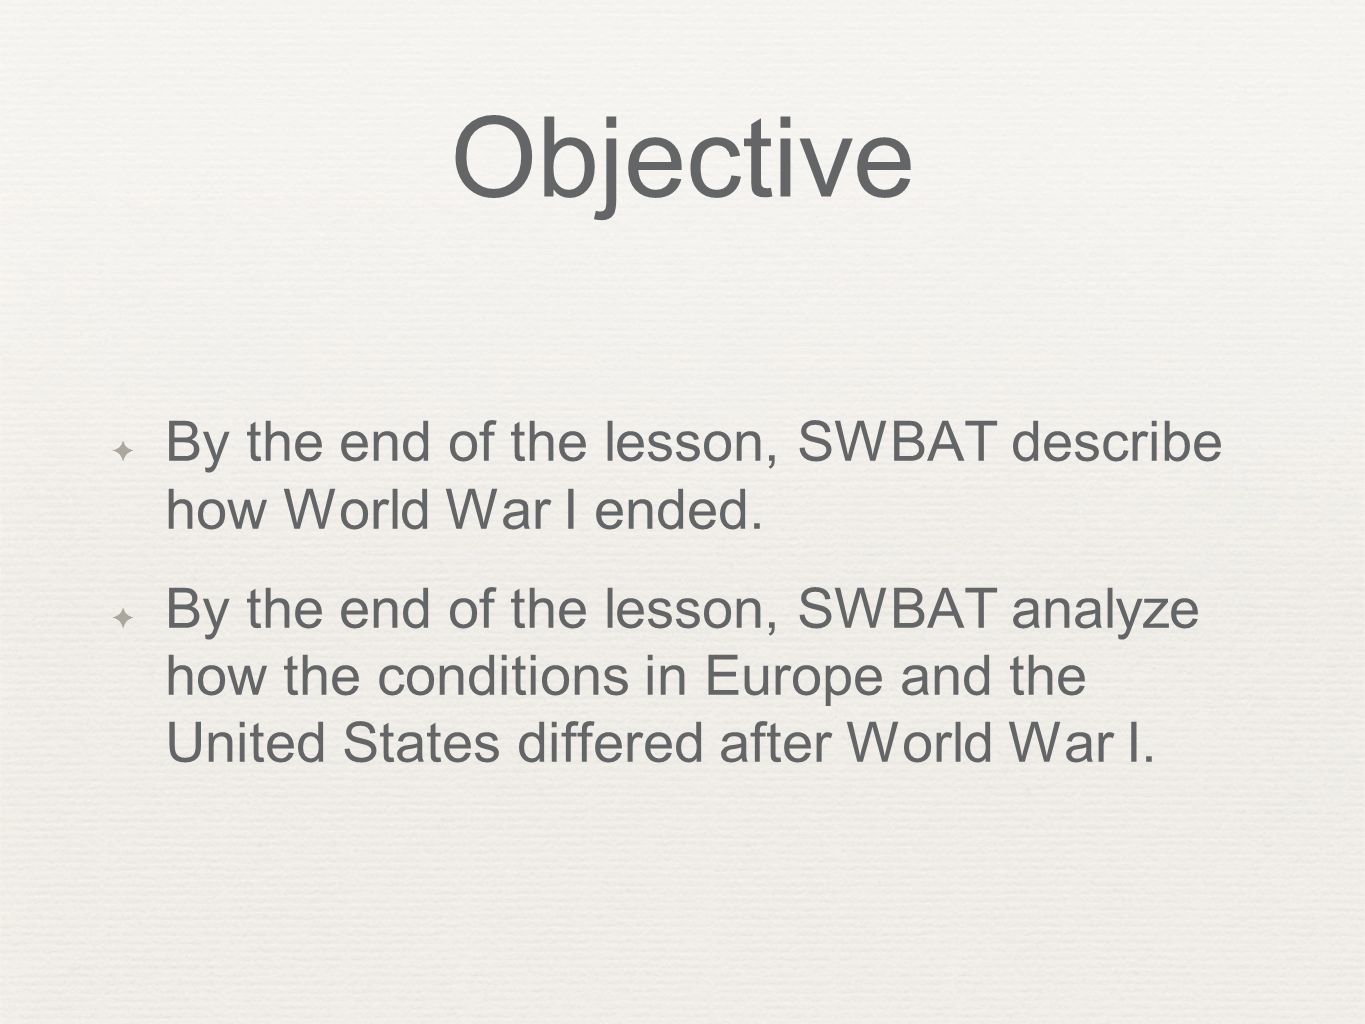 Objective ✦ By the end of the lesson, SWBAT describe how World War I ended. ✦ By the end of the lesson, SWBAT analyze how the conditions in Europe and